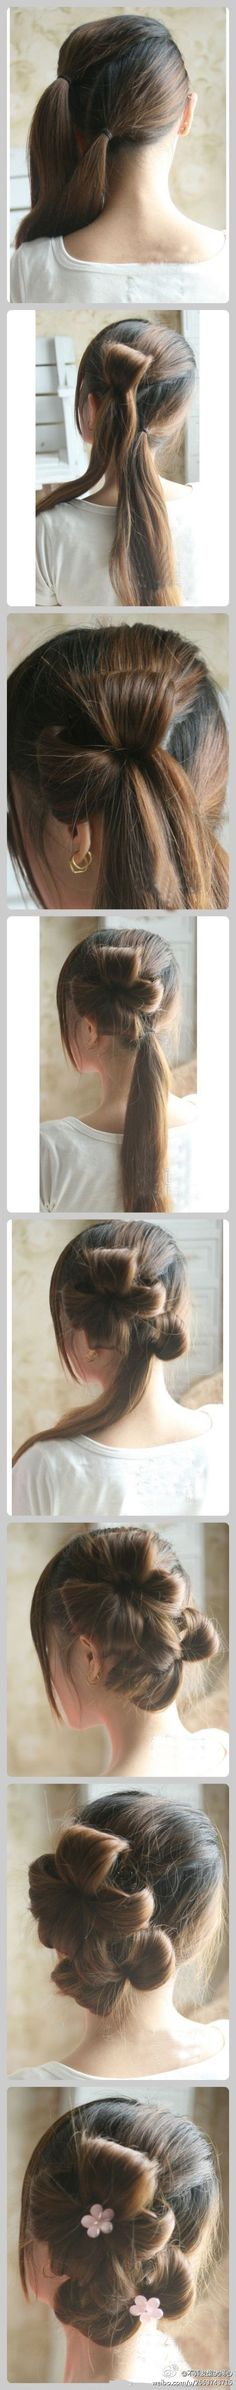 Inspiring Hair Buns And Hair Updos To Try This Season